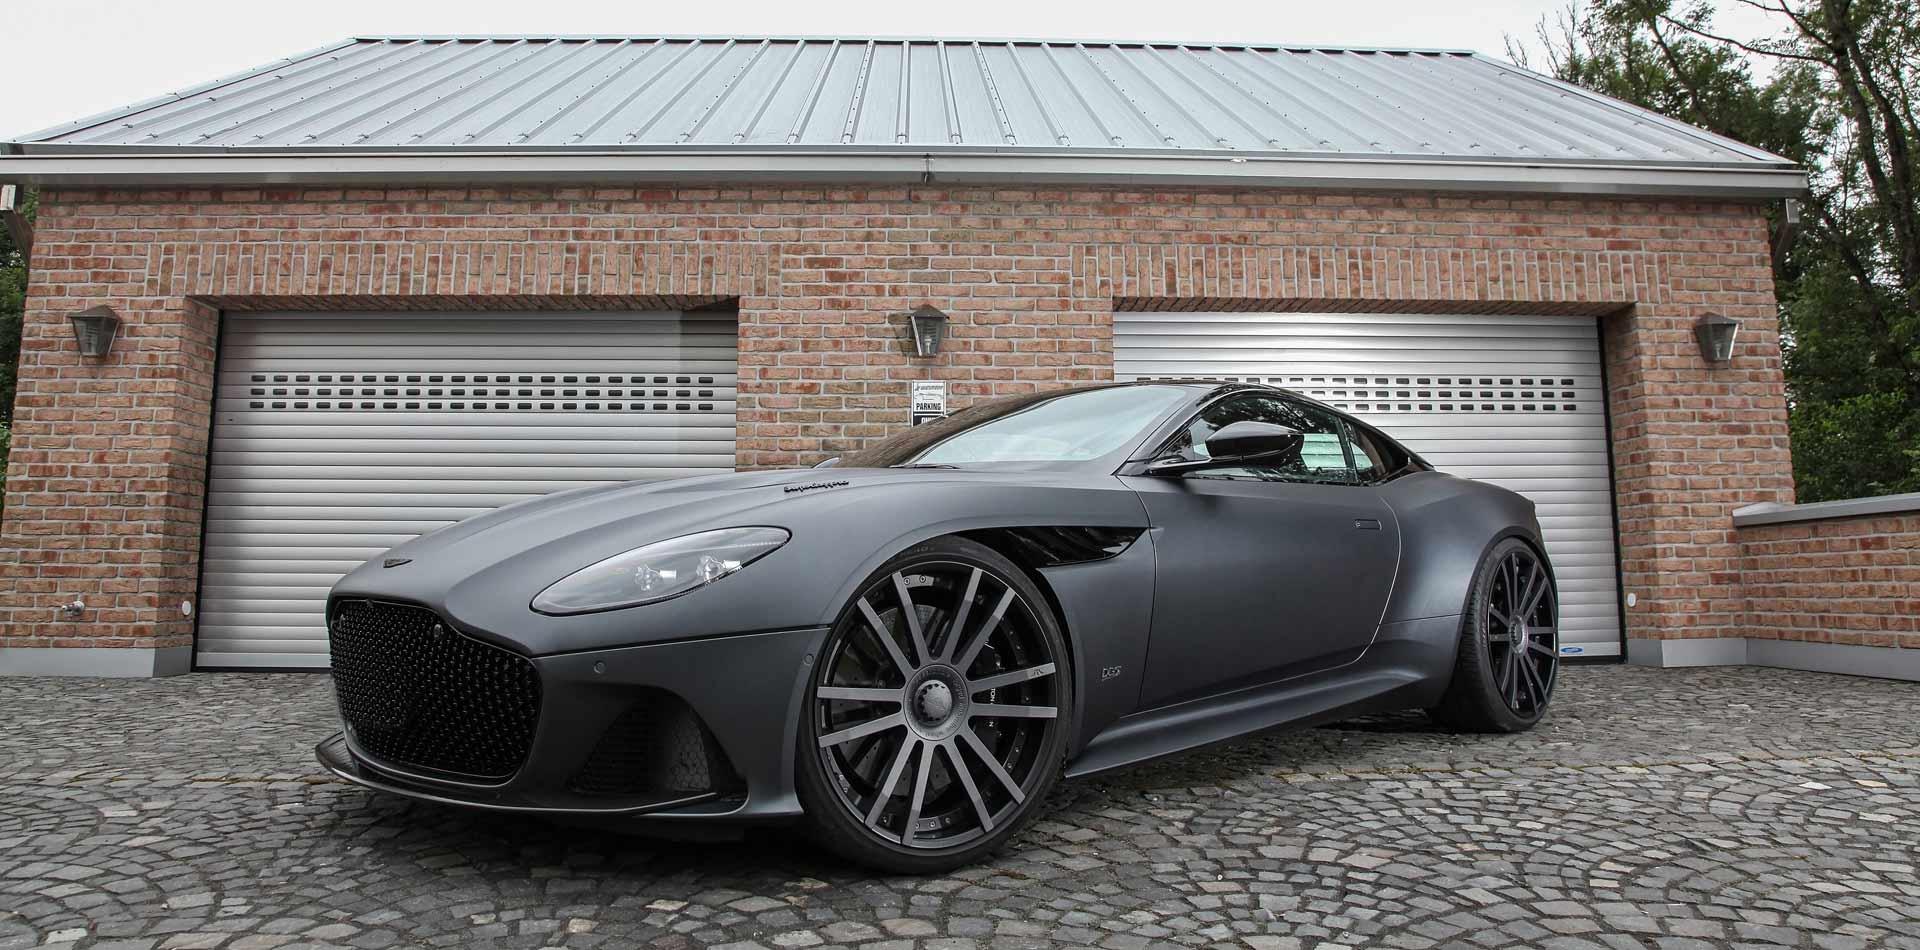 Aston-Martin-DBS-Superleggera-by-Wheelsandmore-1